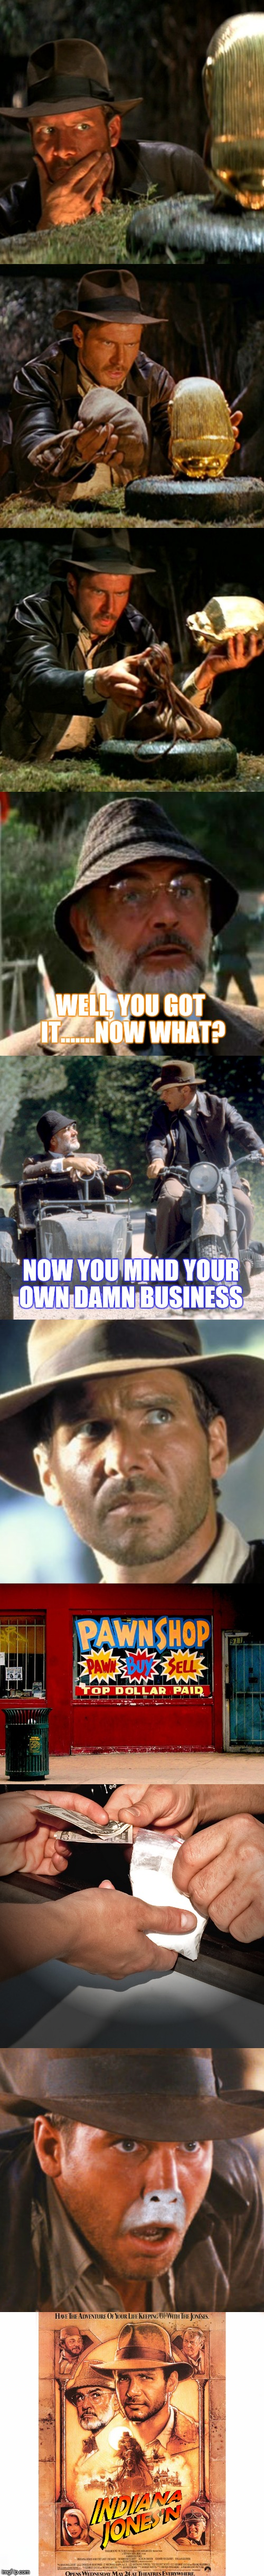 His body is a temple...and it's doomed! | WELL, YOU GOT IT.......NOW WHAT? NOW YOU MIND YOUR OWN DAMN BUSINESS | image tagged in indiana jones,drugs,funny | made w/ Imgflip meme maker